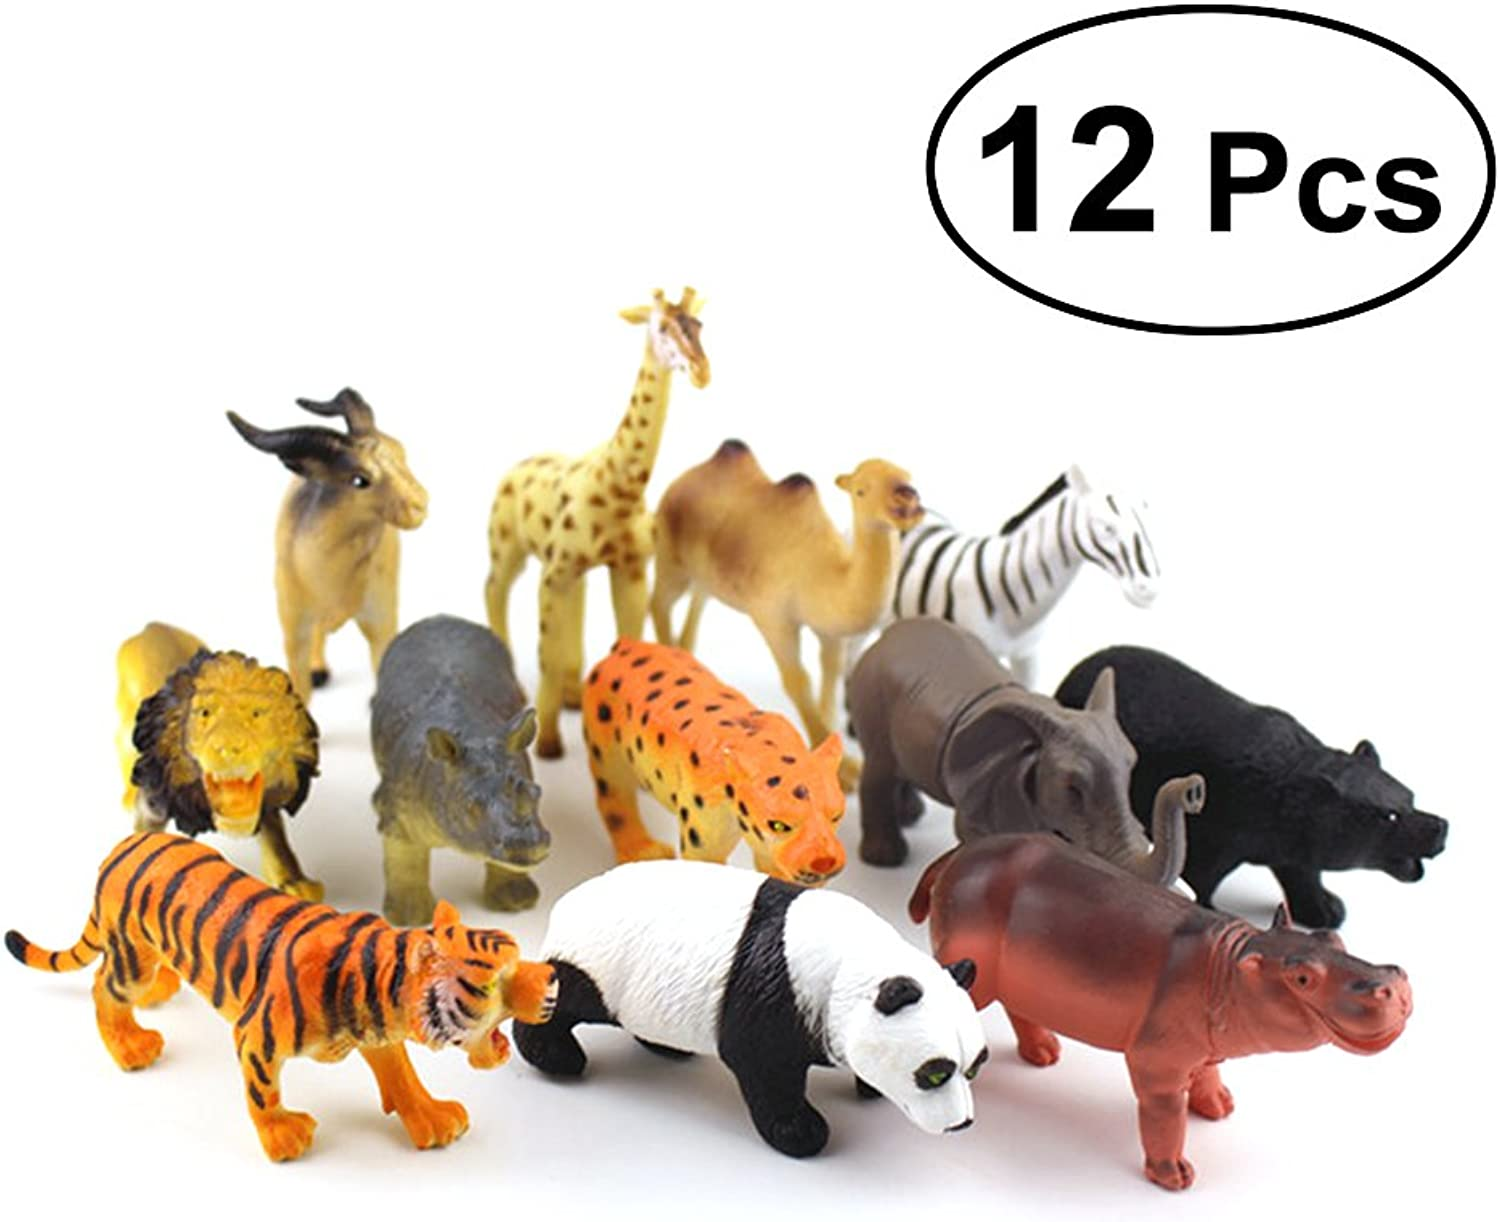 TOYMYTOY Animal Figure Toy 12Pcs Plastic Animals Figure Early Education Cognitive Toys for Kids Toddlers